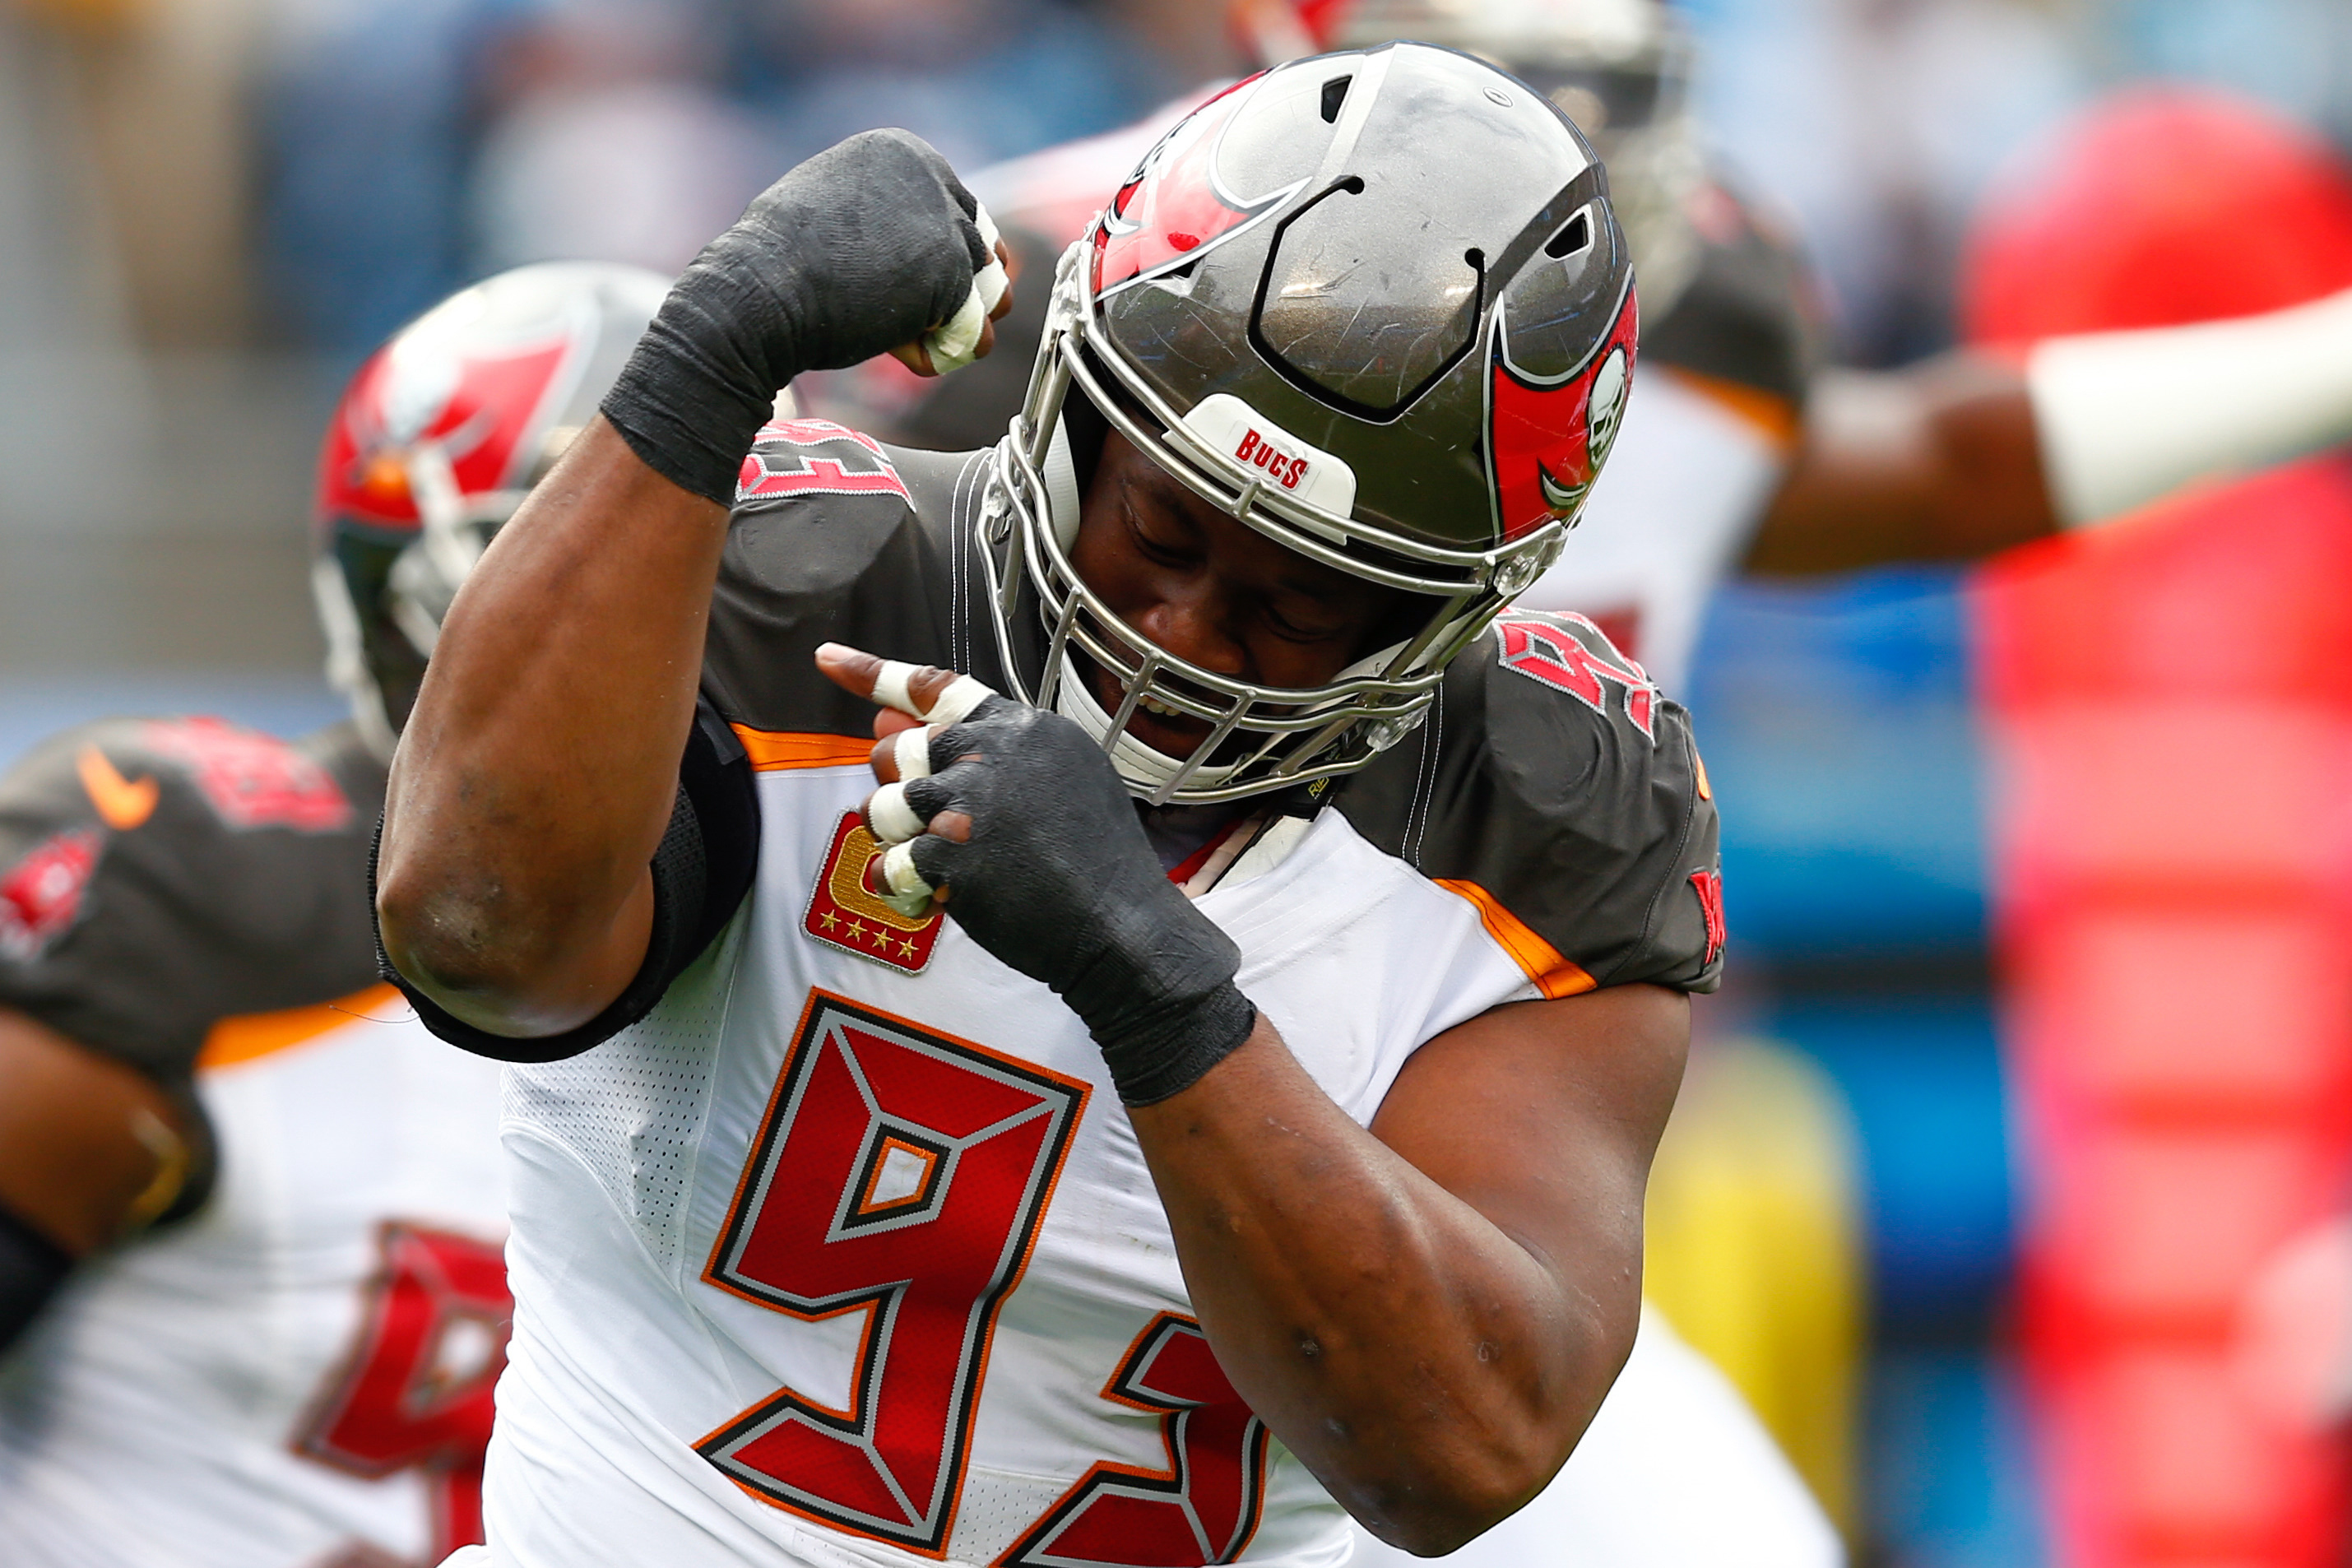 Bucs' veteran McCoy treating camp like a youngster